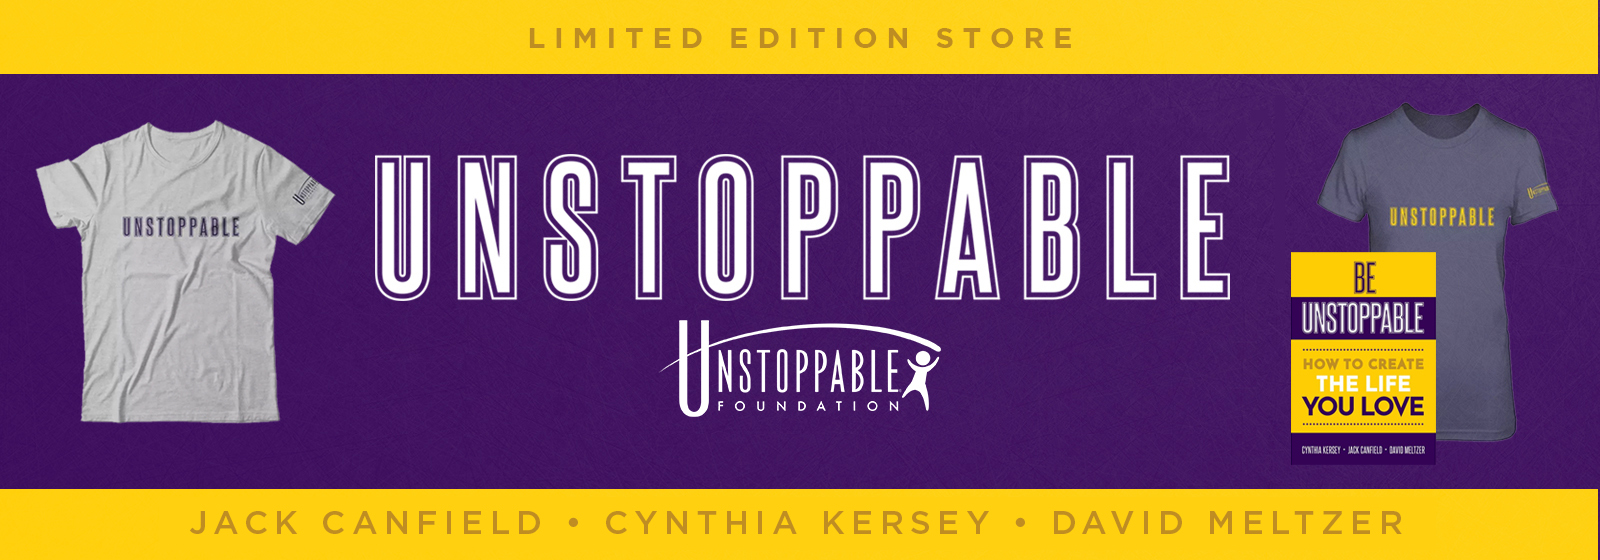 Unstoppable Foundation Store Store